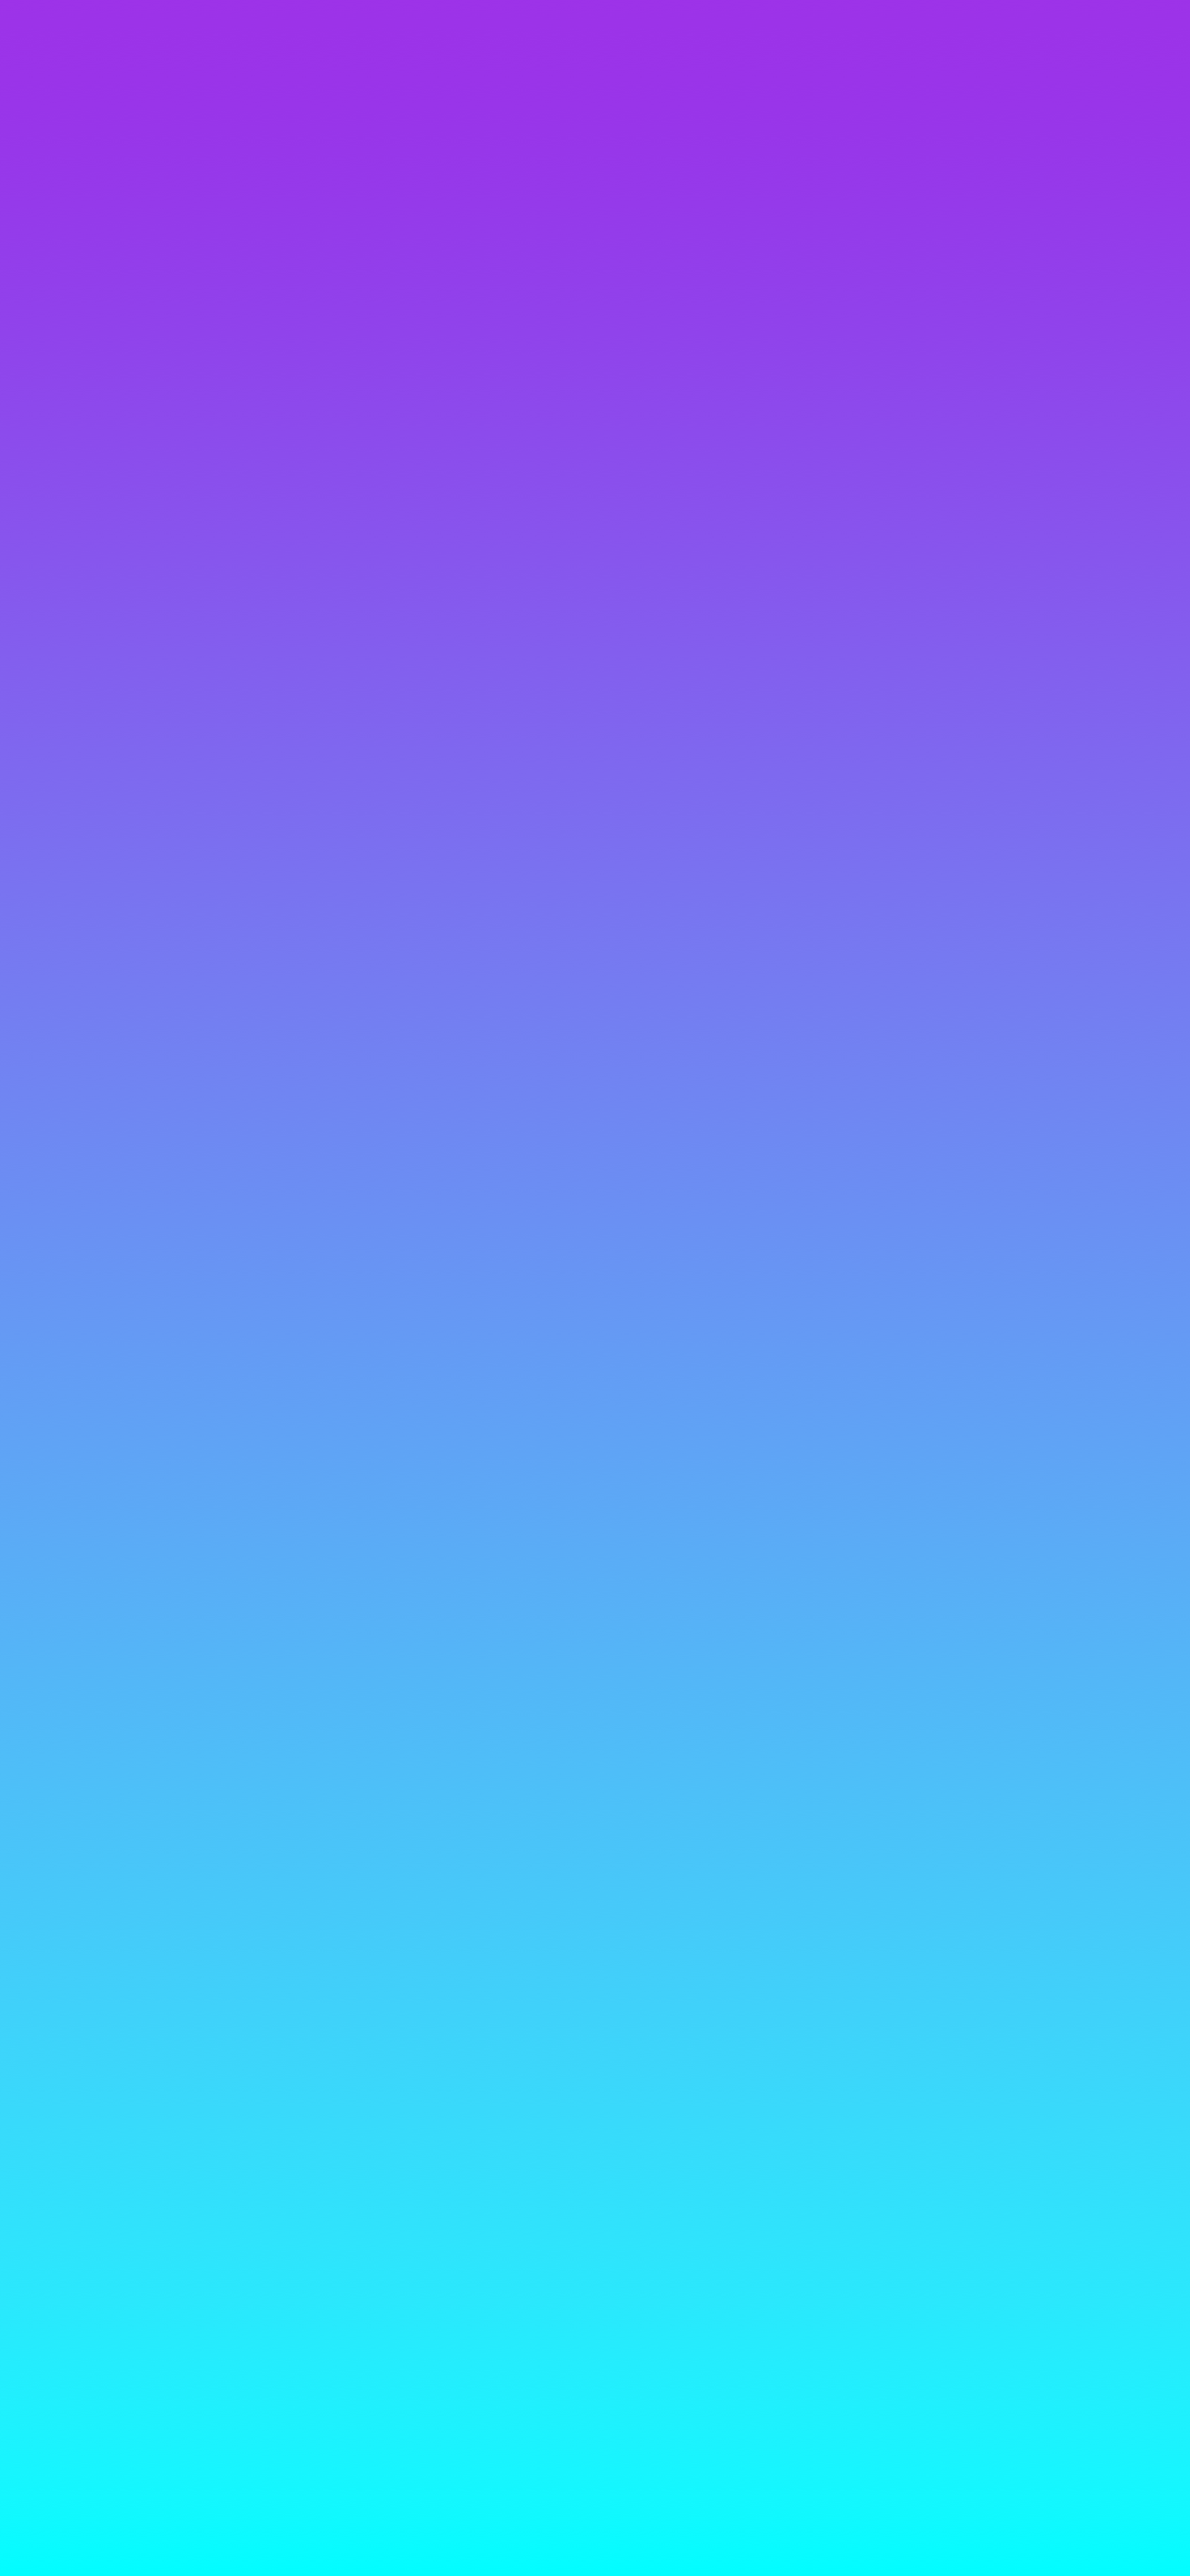 iPhone wallpaper gradient purple blue Fonds d'écran iPhone du 25/01/2019